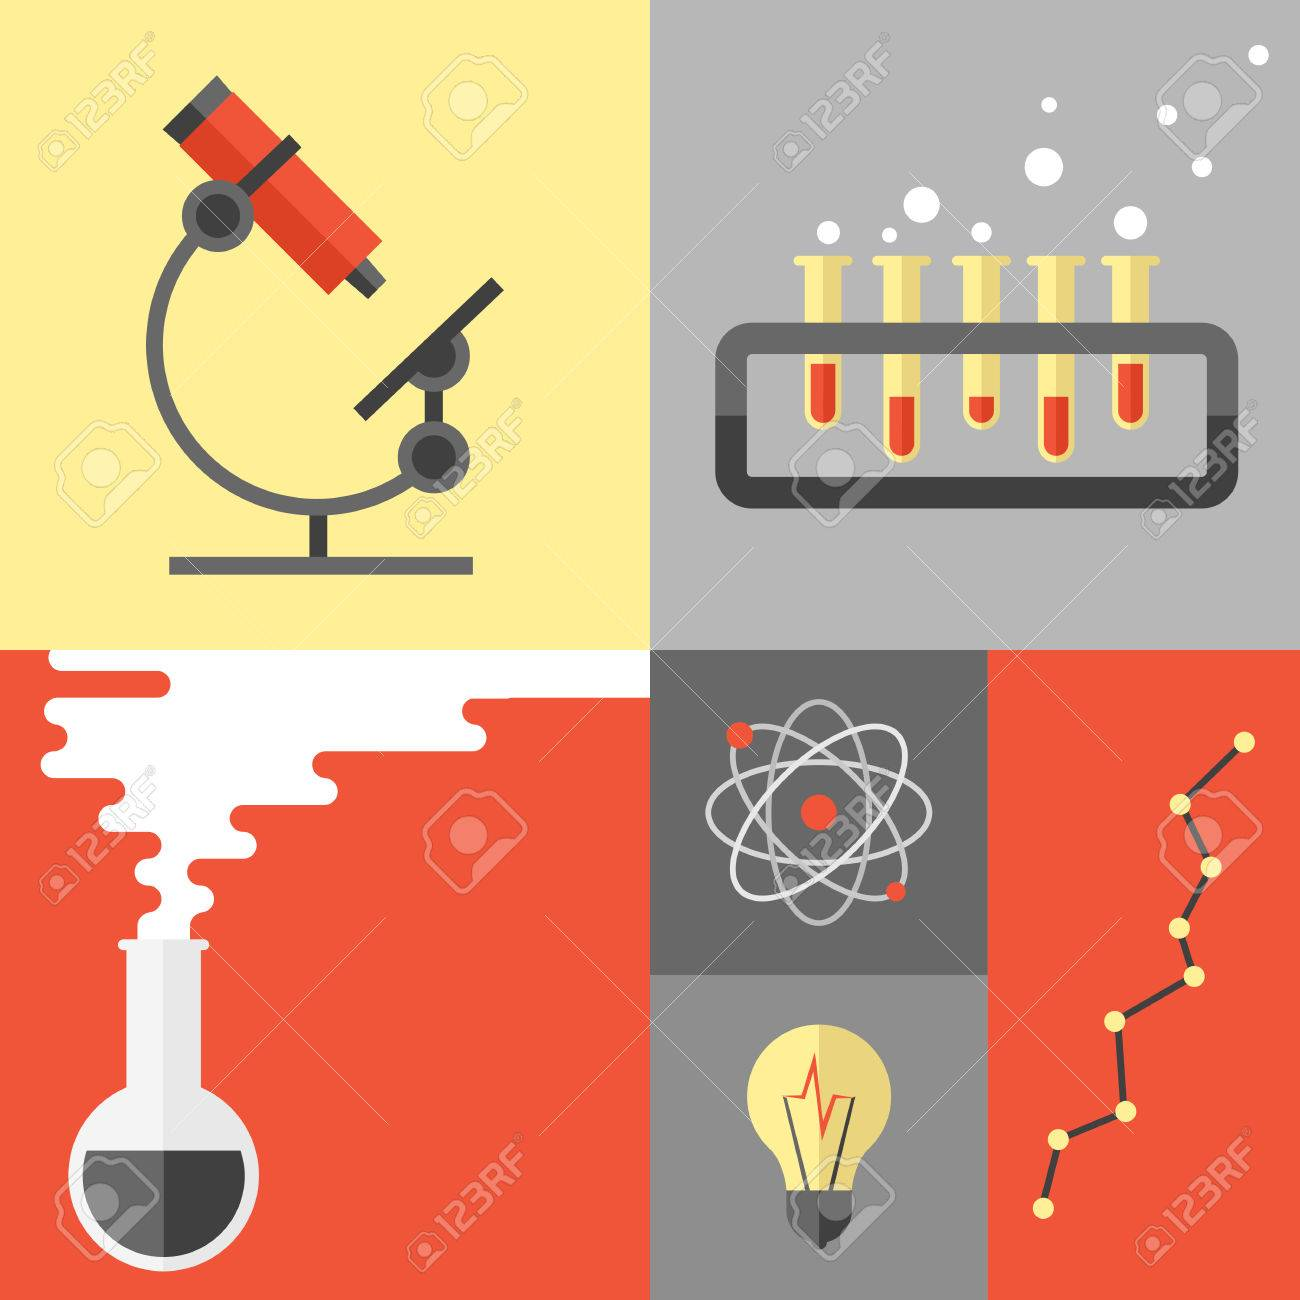 flat design poster of science experiment and research analysis